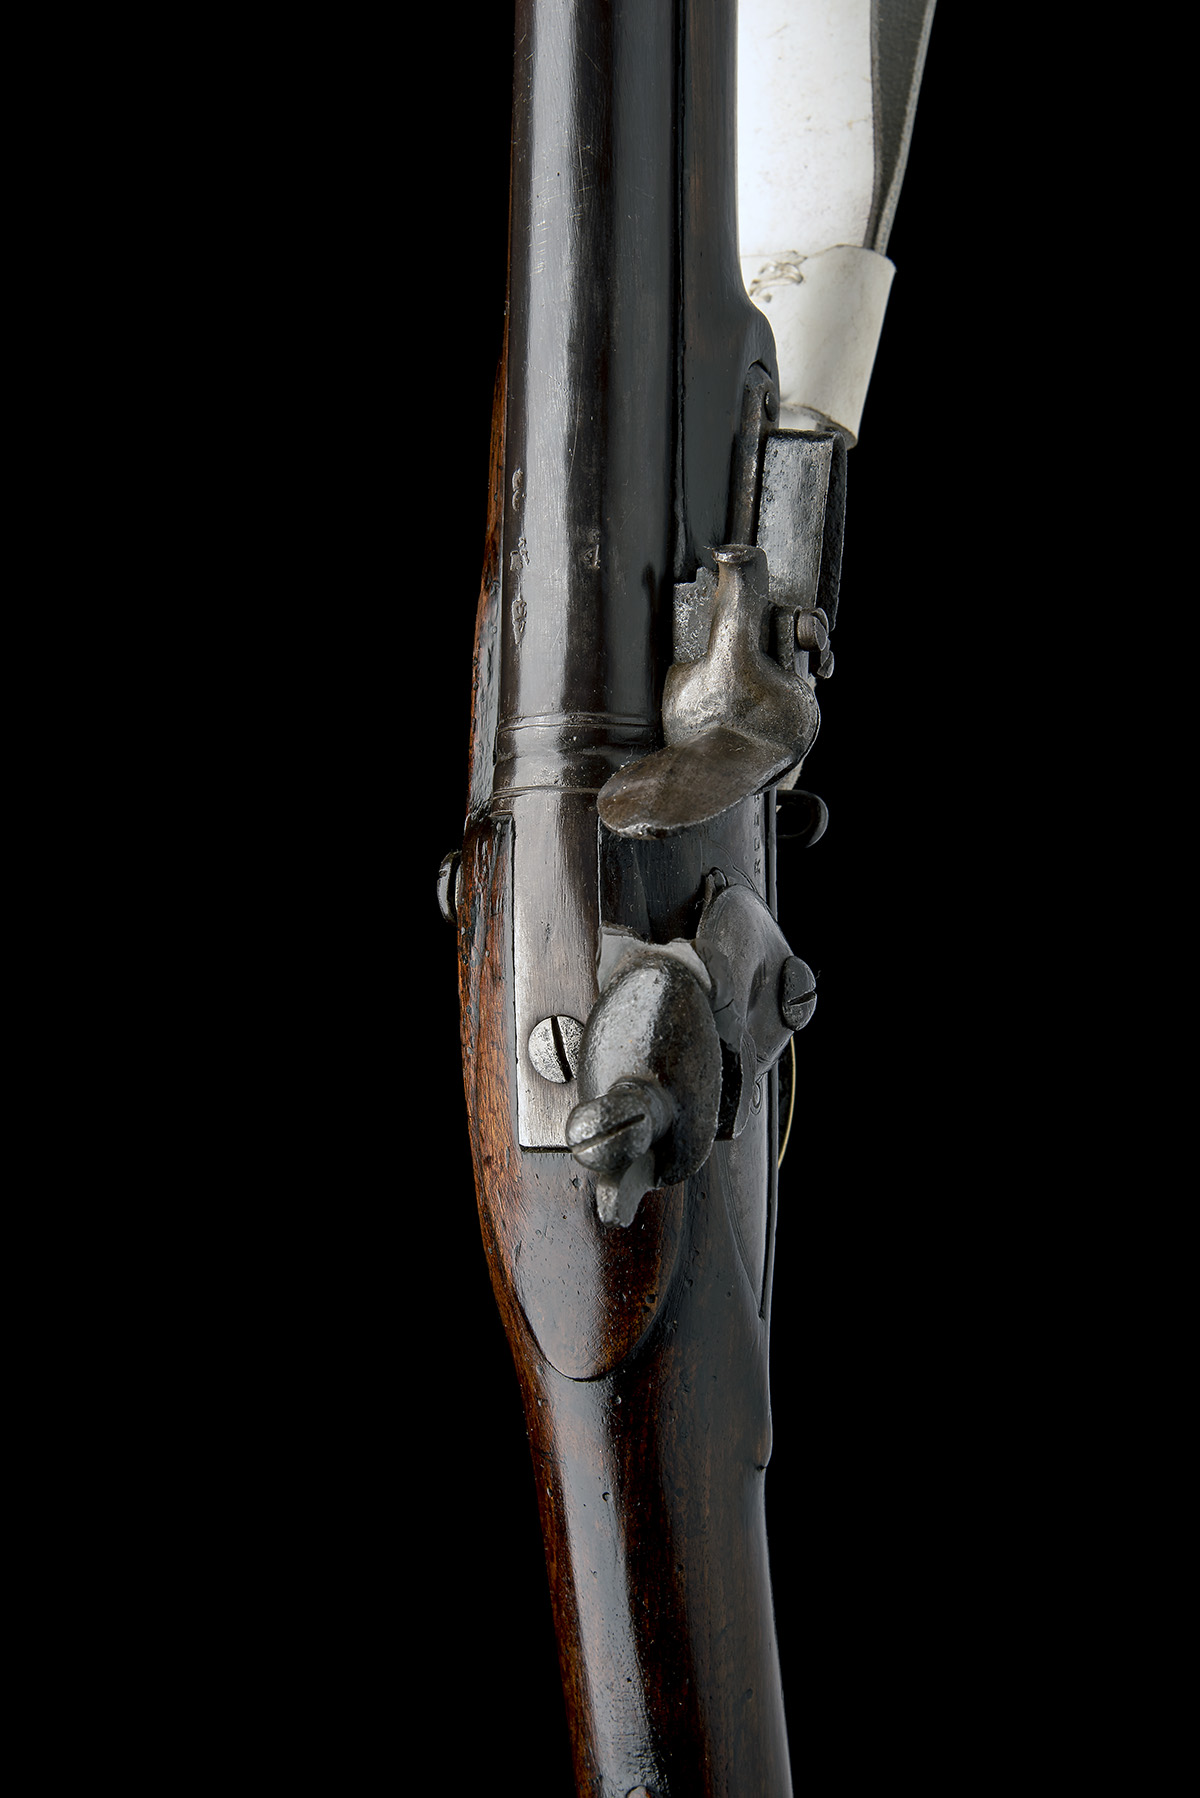 REED, LONDON A .750 FLINTLOCK MUSKET, MODEL 'INDIA PATTERN BROWN BESS', rack no. 47, WITH BAYONET, - Image 6 of 8